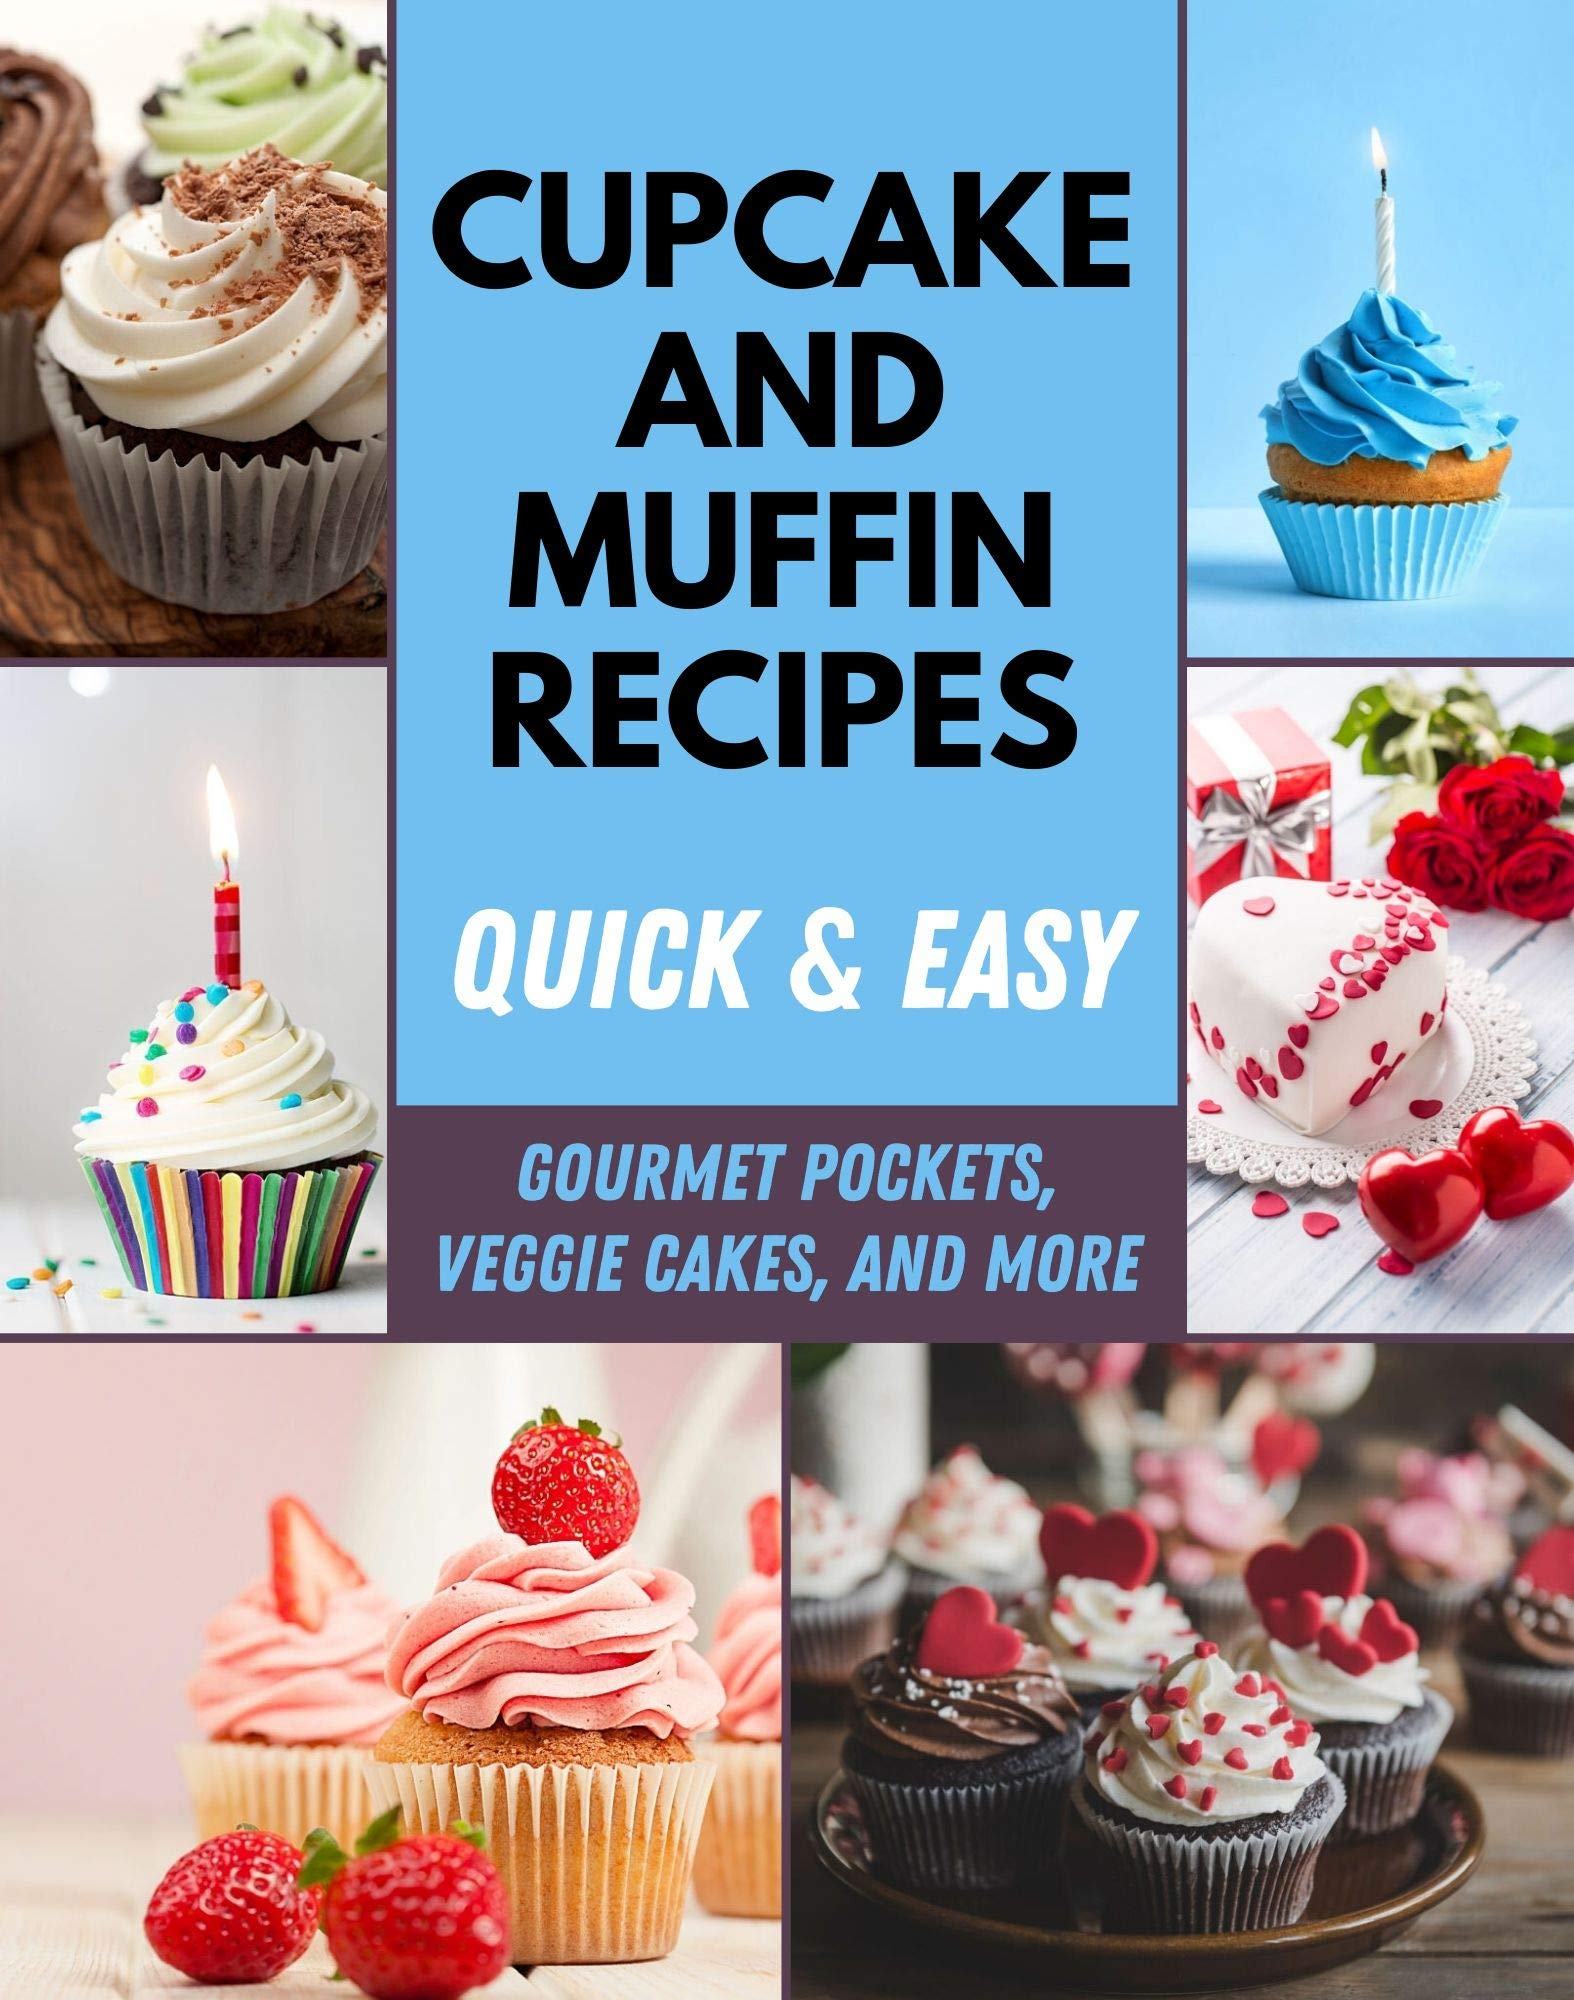 Cupcake and Muffin Recipes: Quick & Easy Recipes Baking Cakes, Breads, Cookies, Pies, Delicious Mini-Pies, Pasta Cups, Gourmet Pockets, Veggie Cakes and Much More at Home | Step-by-Step for Beginners